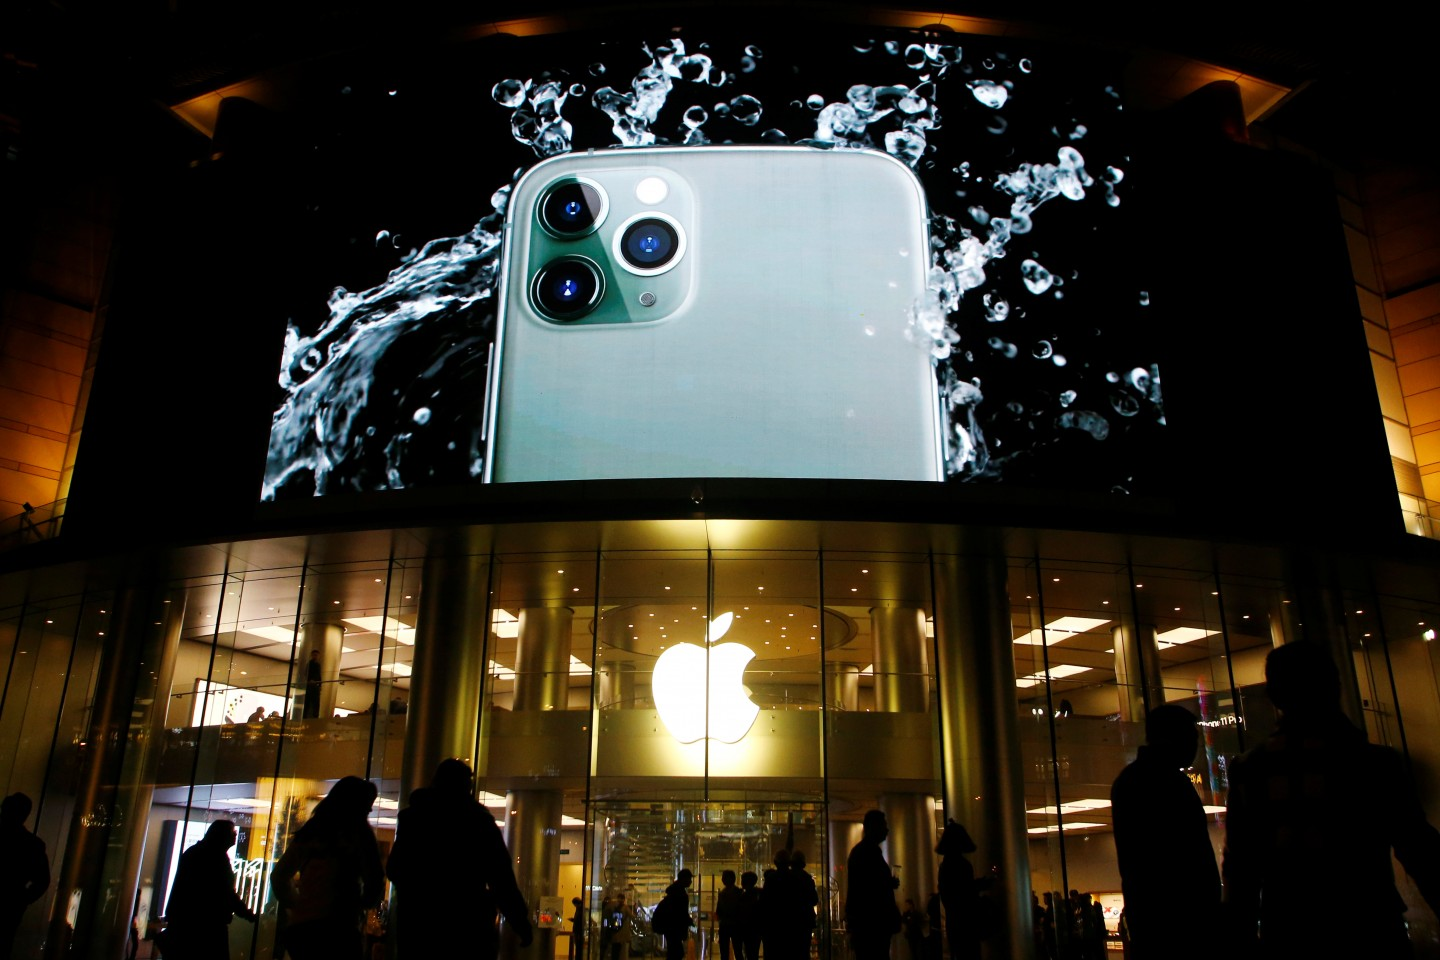 The knowledge economy, symbolised by the Apple iPhone, has caused vastly unequal income distribution and social differentiation within the US, resulting in the loss of fundamental social justice on which society depends. (REUTERS/Florence Lo)